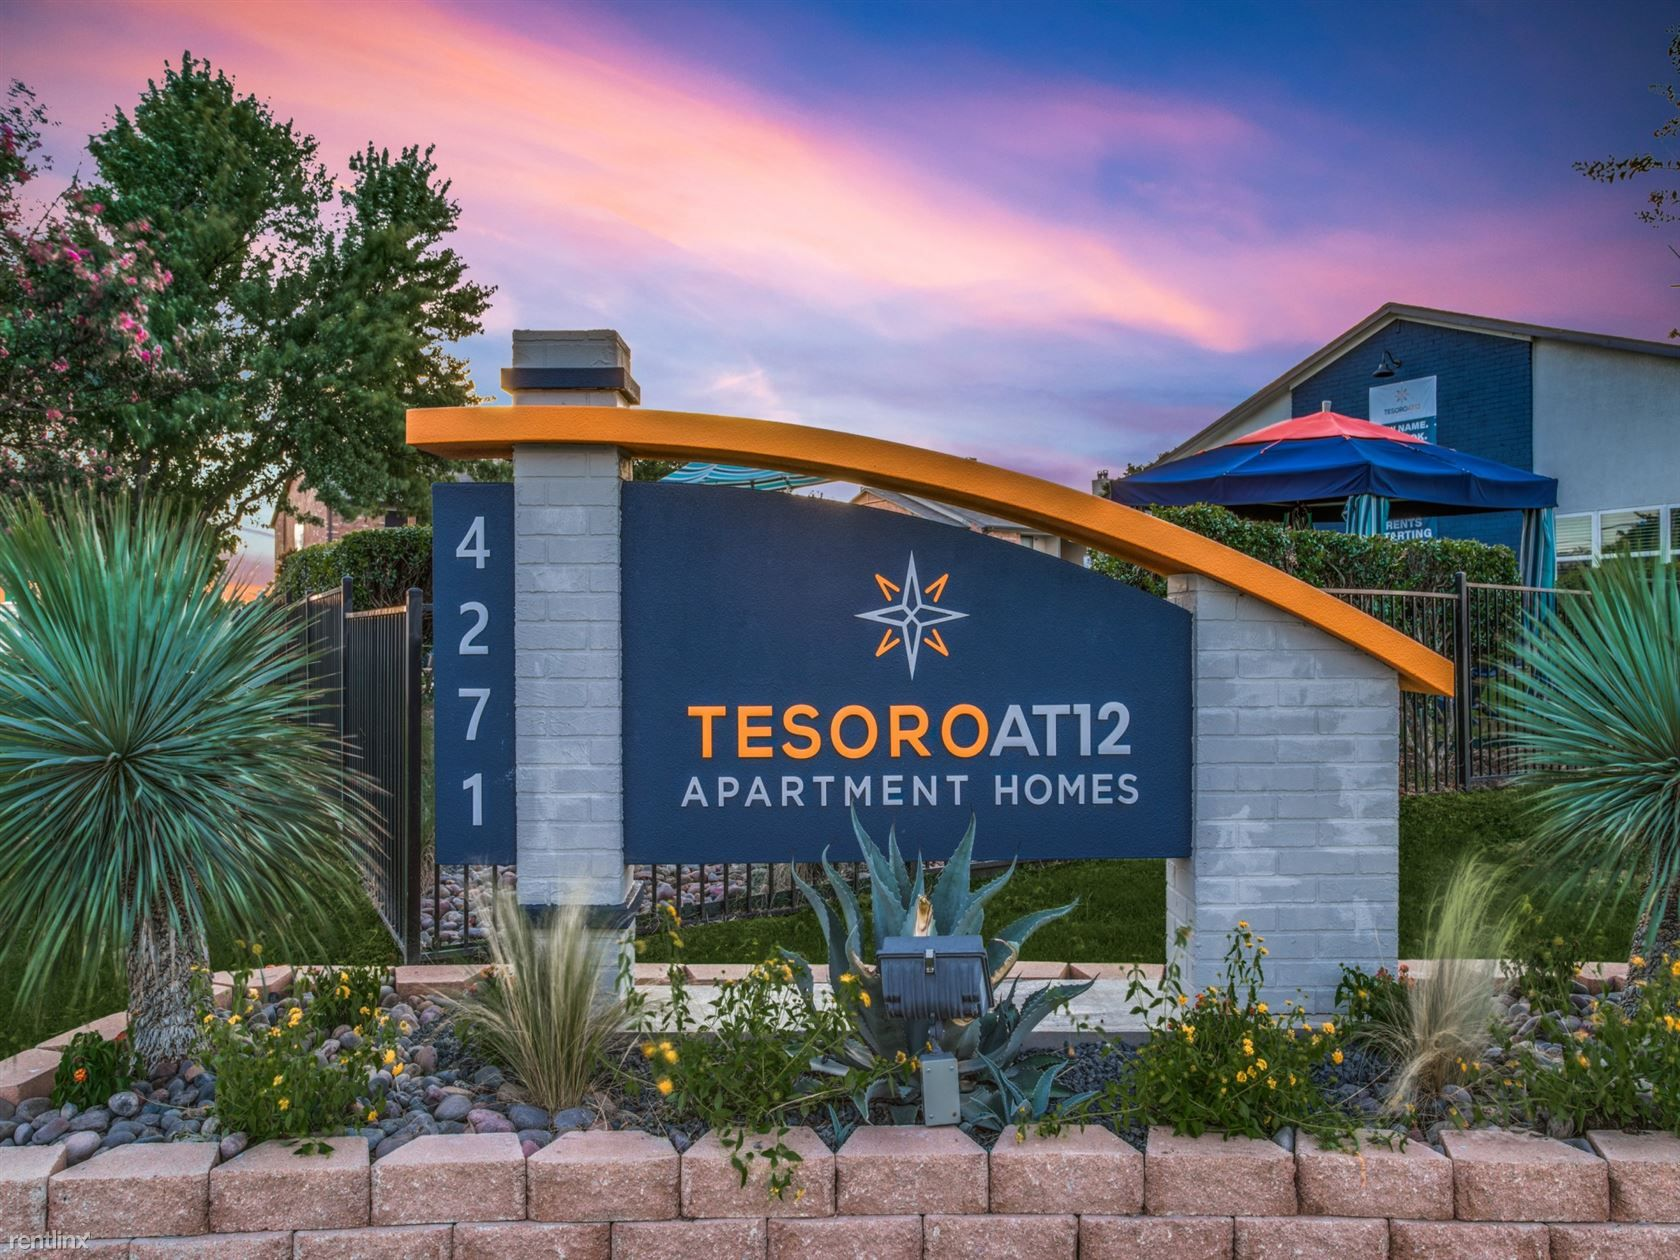 Tesoro at 12 Apartments for rent